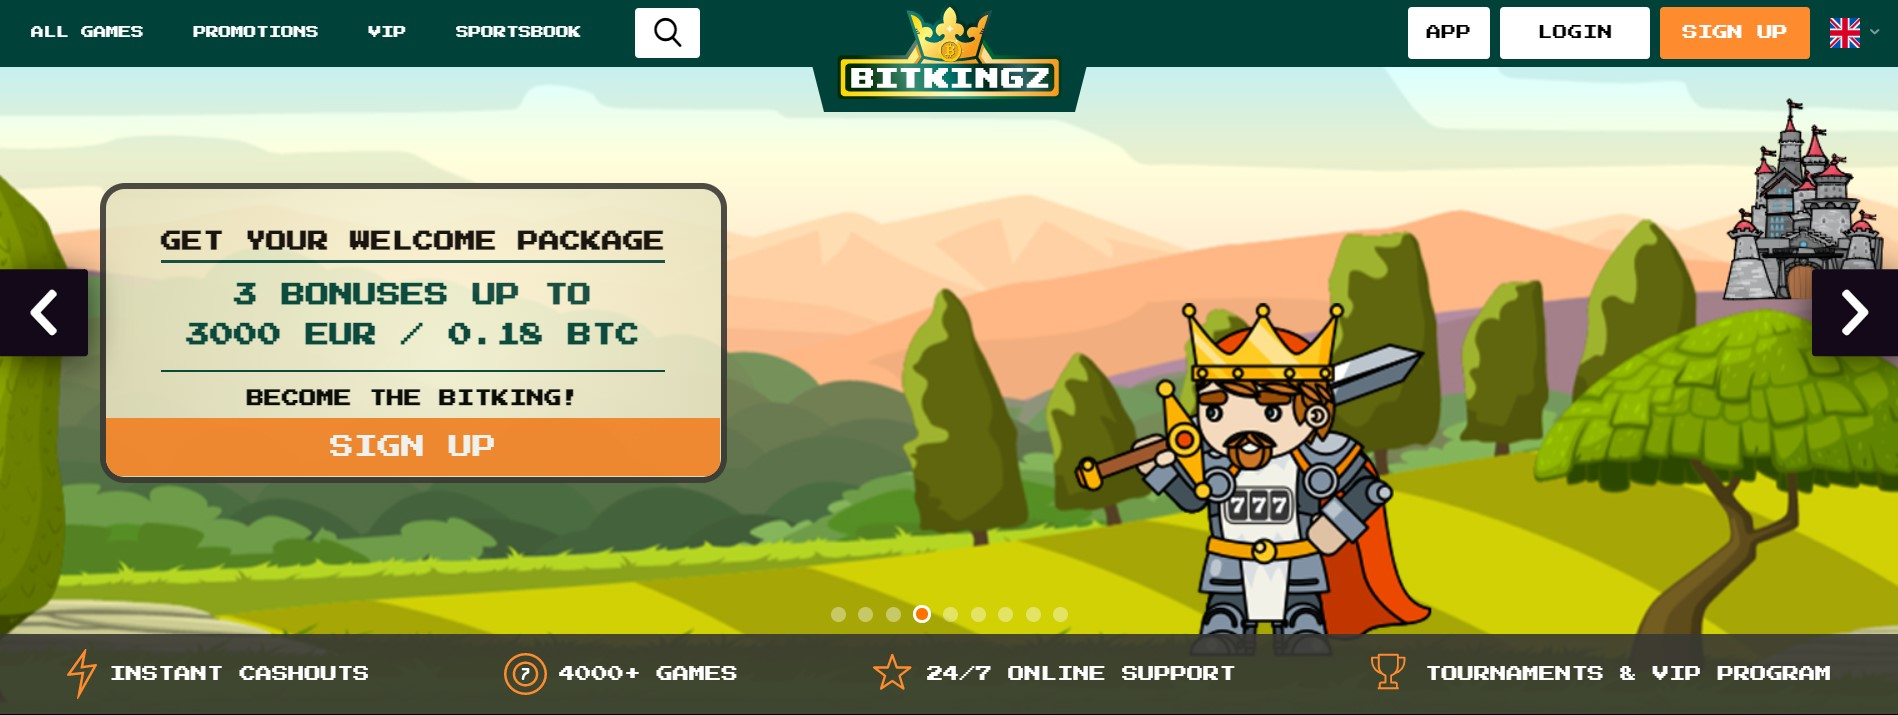 bitkingz home page